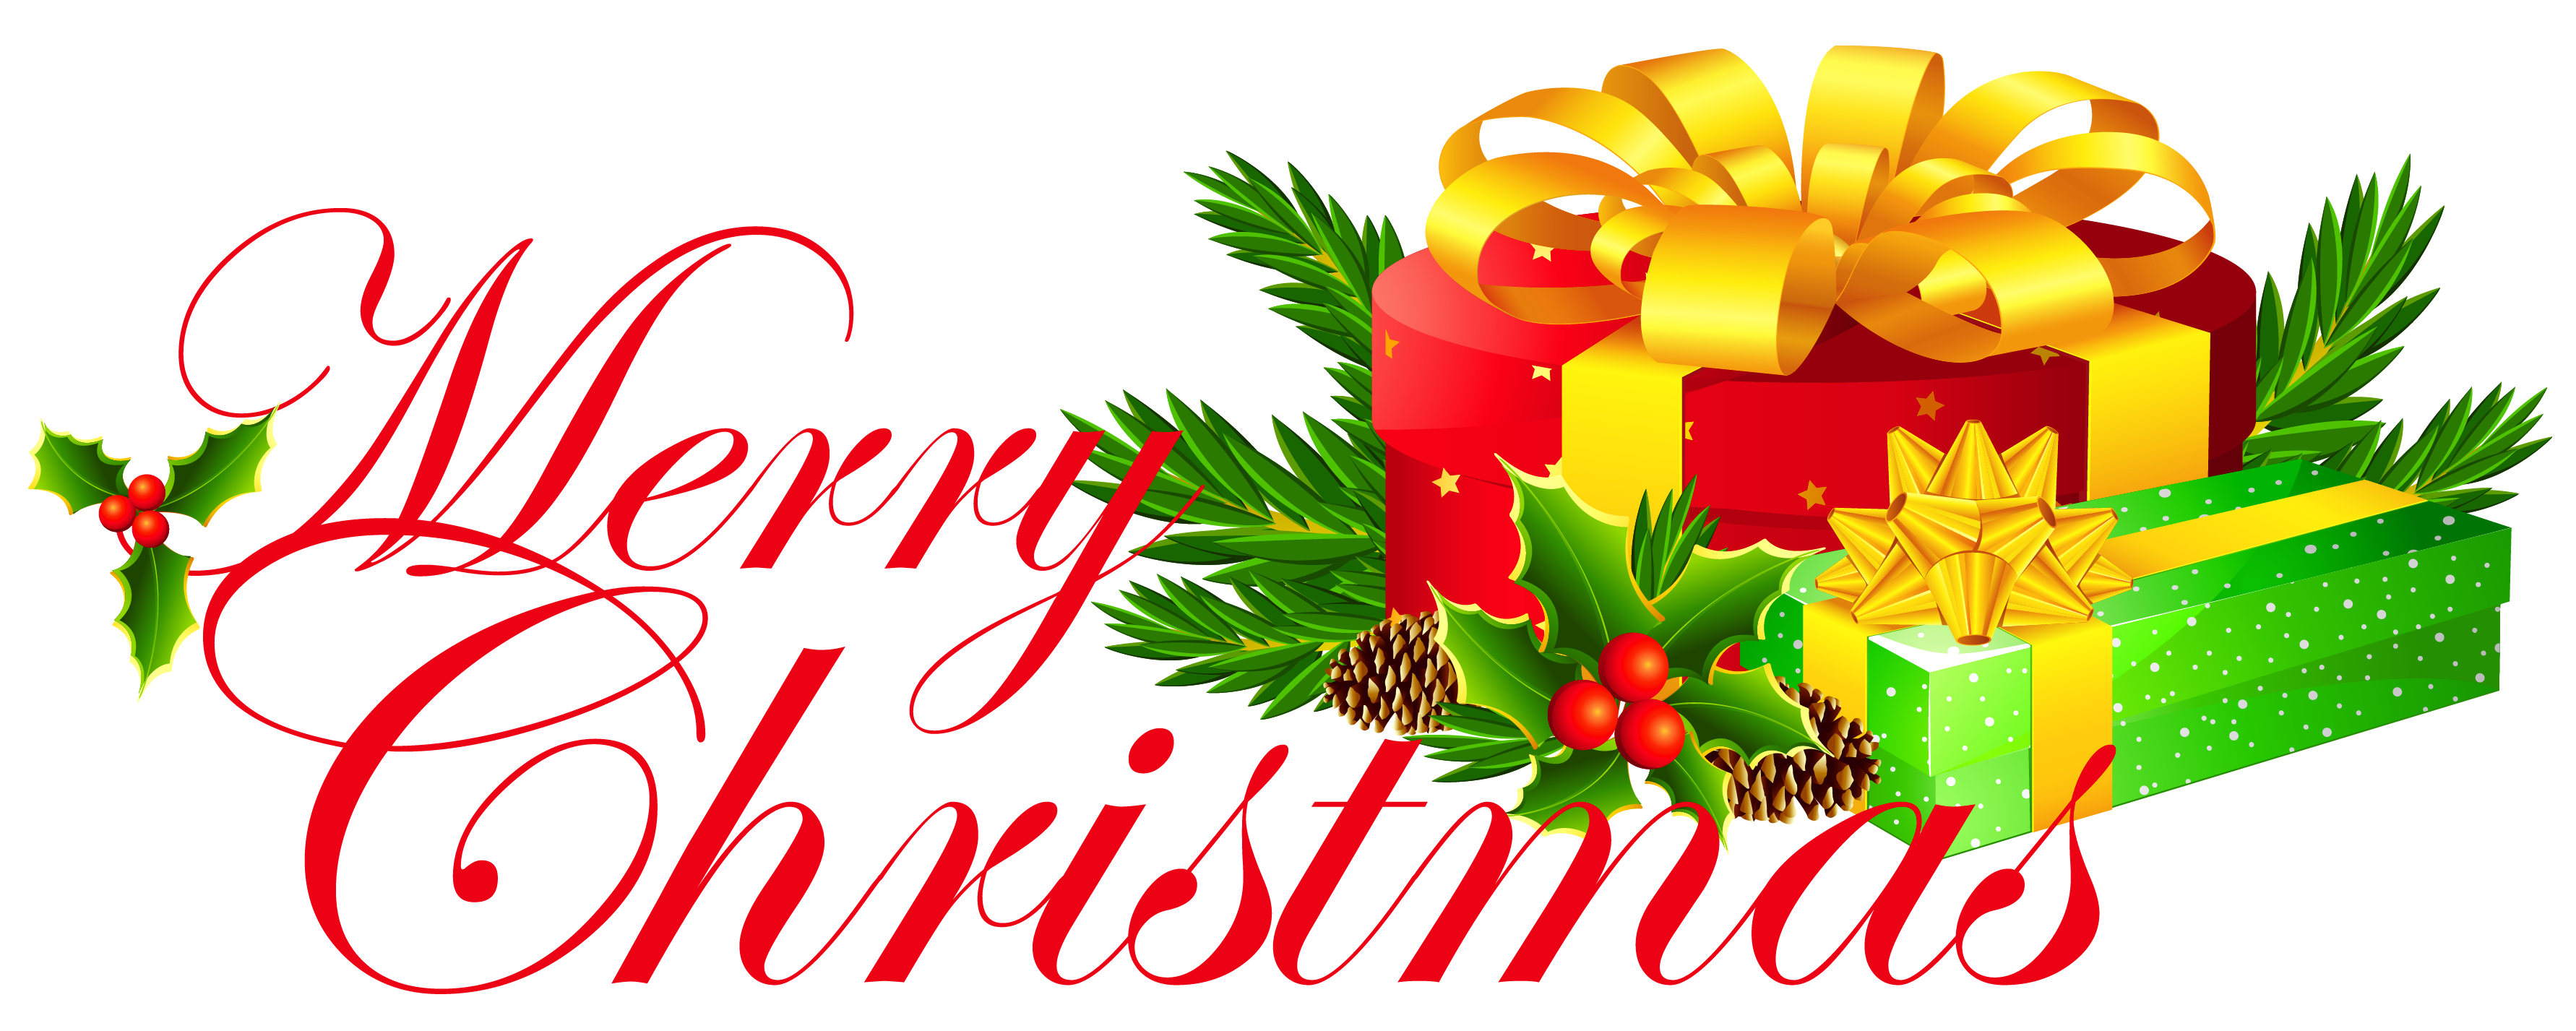 3565x1427 Merry Christmas Clipart Images Amp Look At